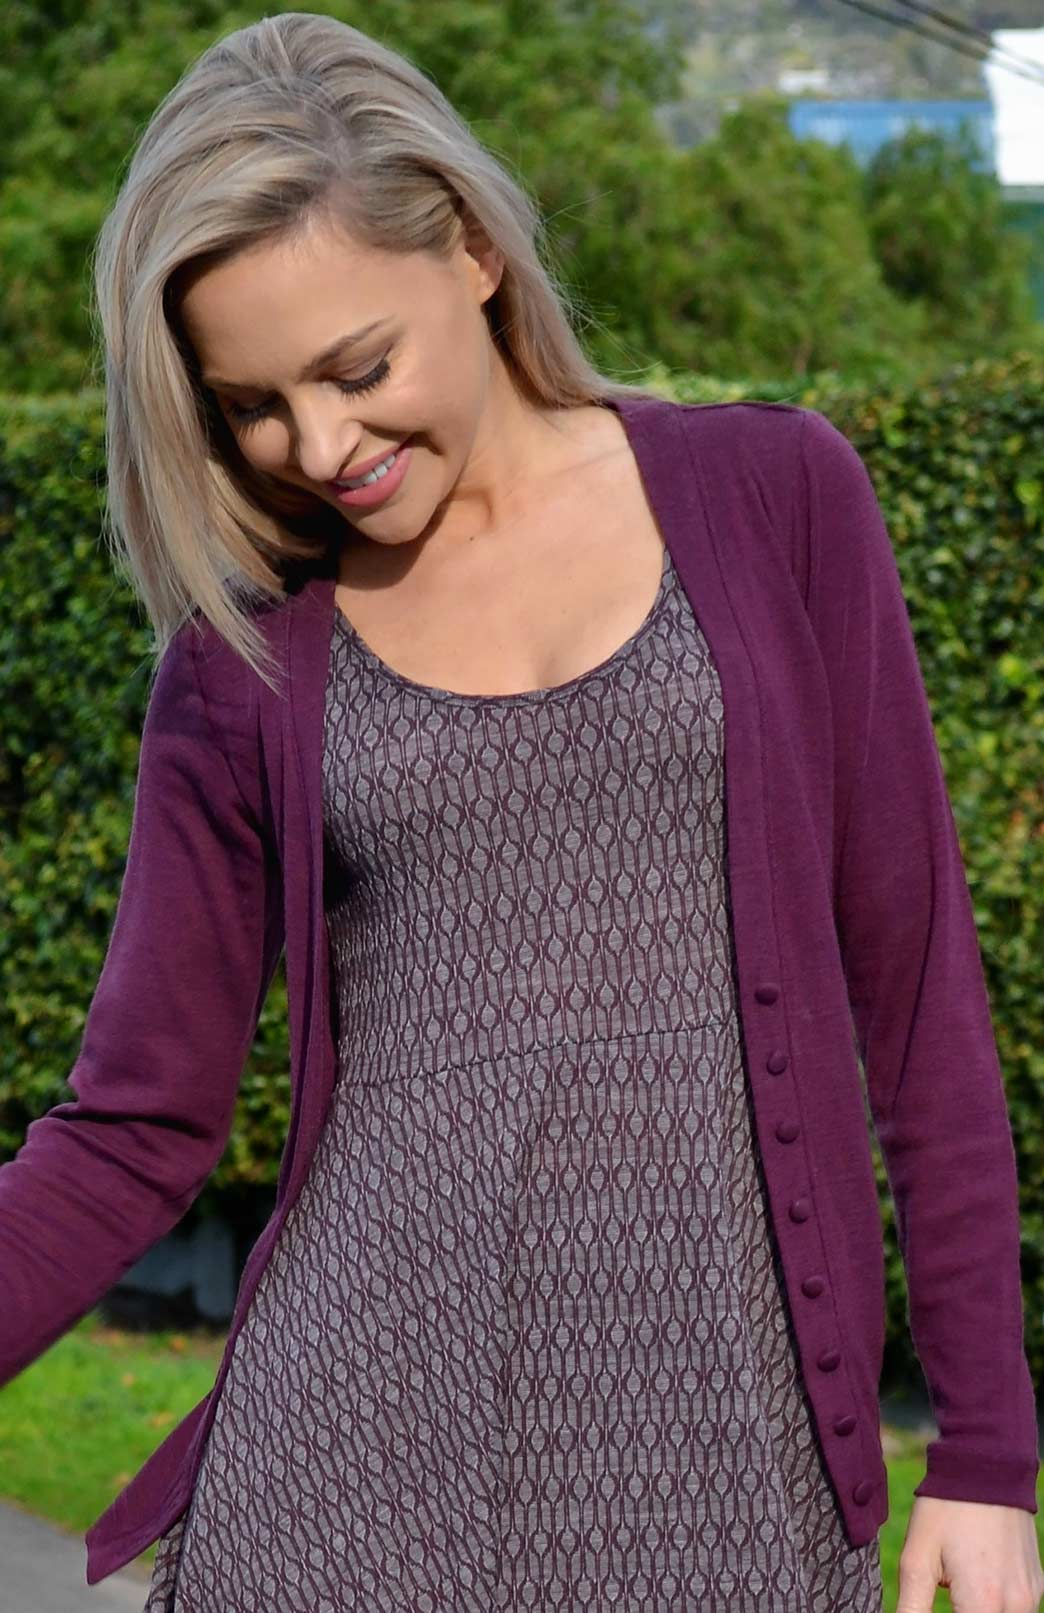 Annie V-Neck Cardigan - Women's Aubergine Purple Long Sleeve Wool Cardigan with hand-made buttons - Smitten Merino Tasmania Australia